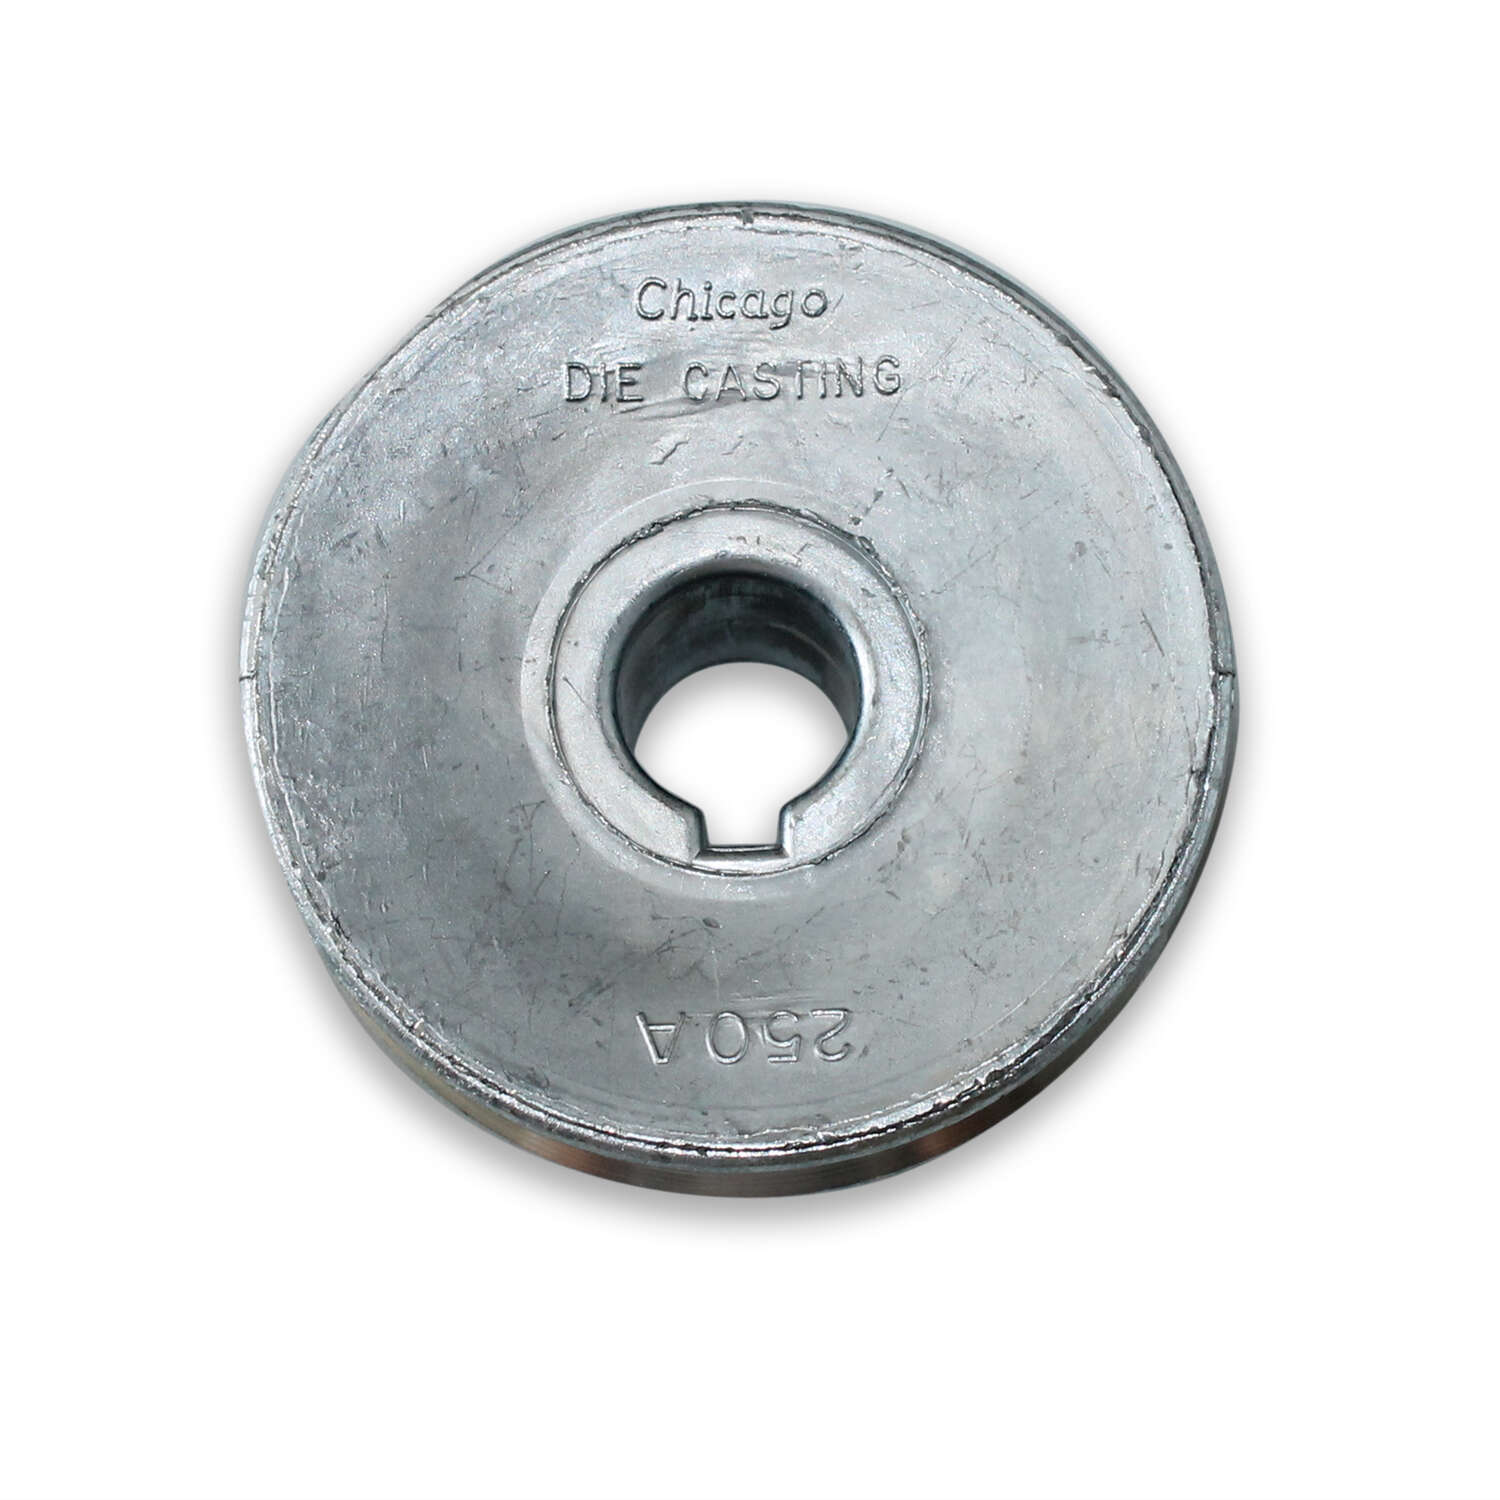 Chicago Die Cast Single V Grooved Pulley A 2-1/4 in. x 5/8 in. Bulk